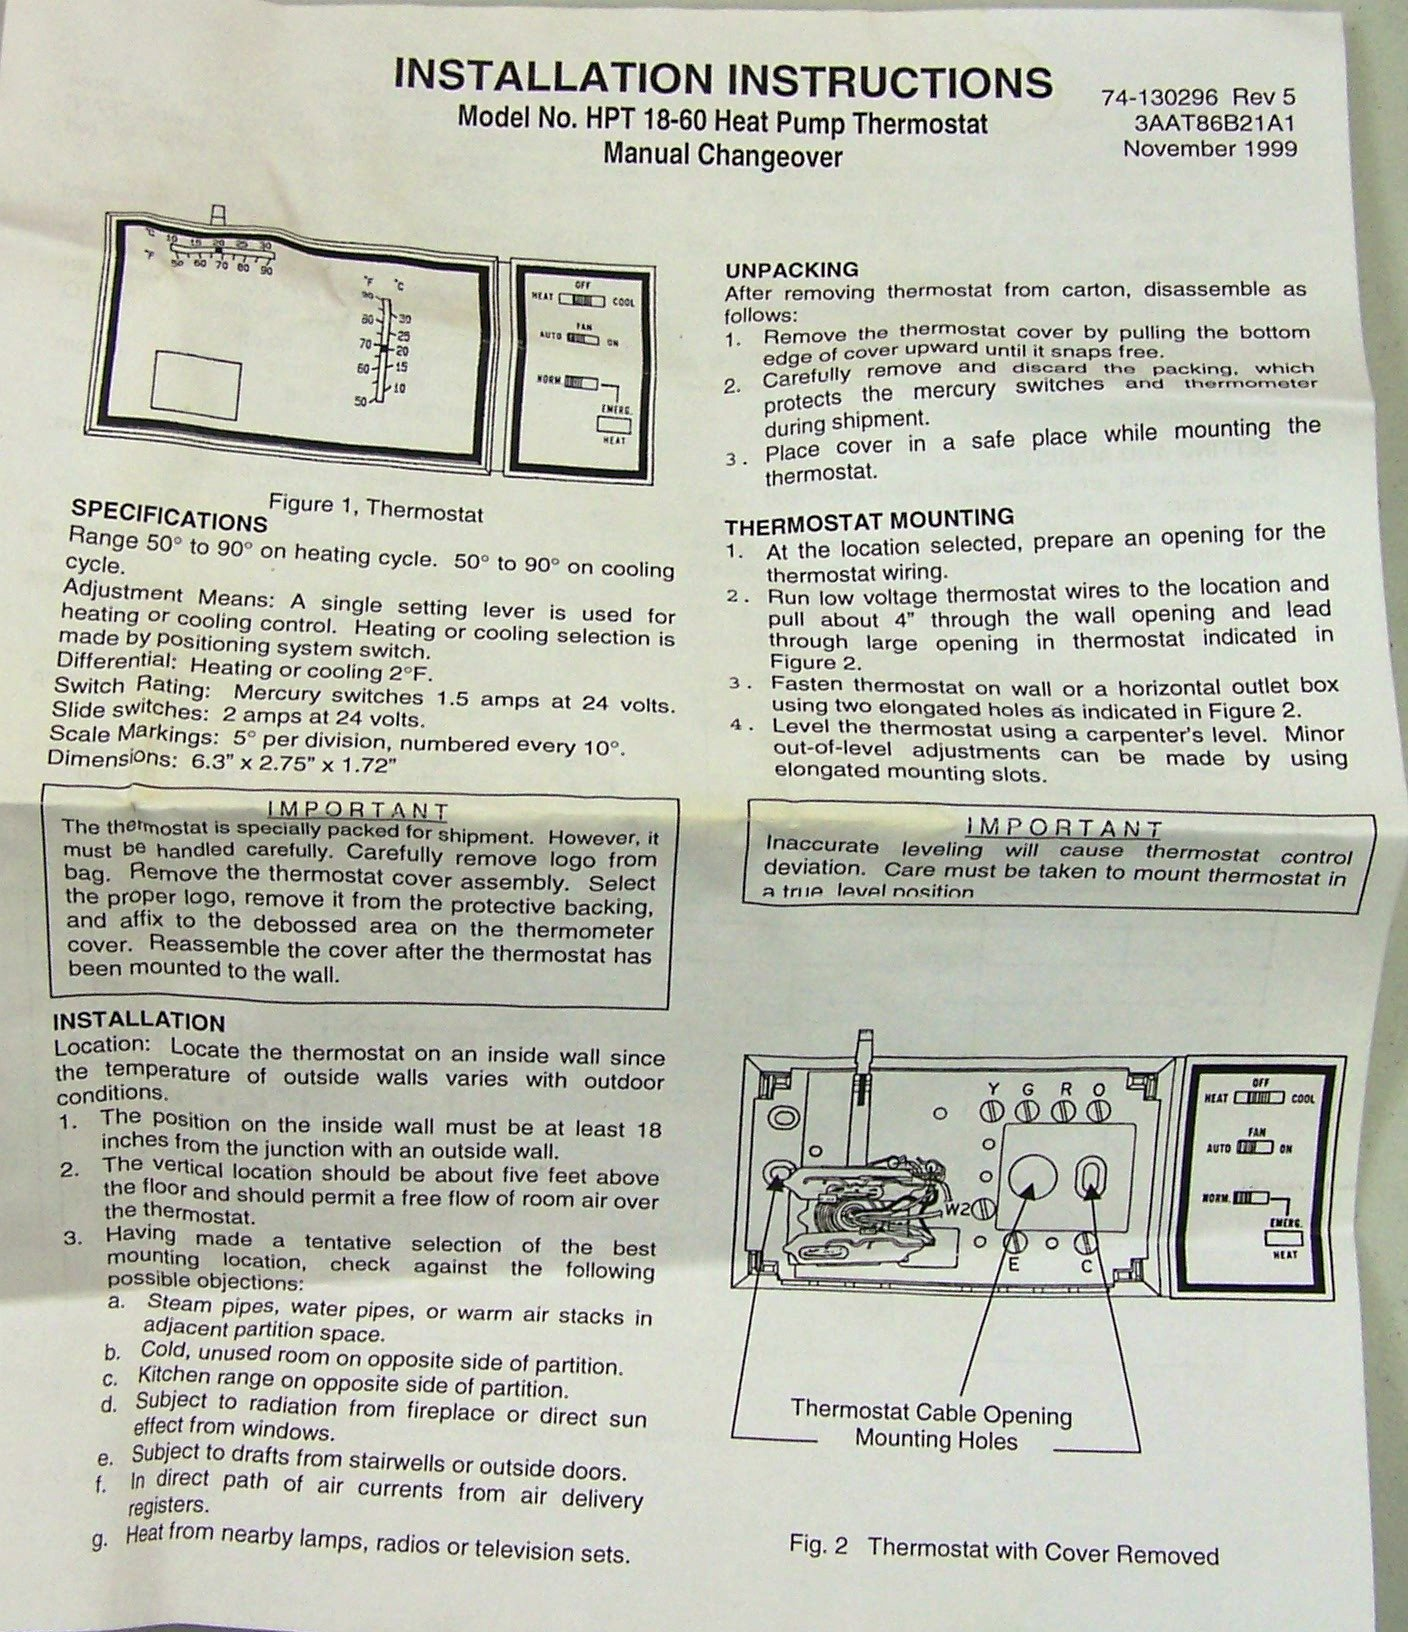 101_7864 hpt18 60 goodman heat pump thermostat with emergency heat janitrol thermostat hpt 18-60 wiring diagram at alyssarenee.co